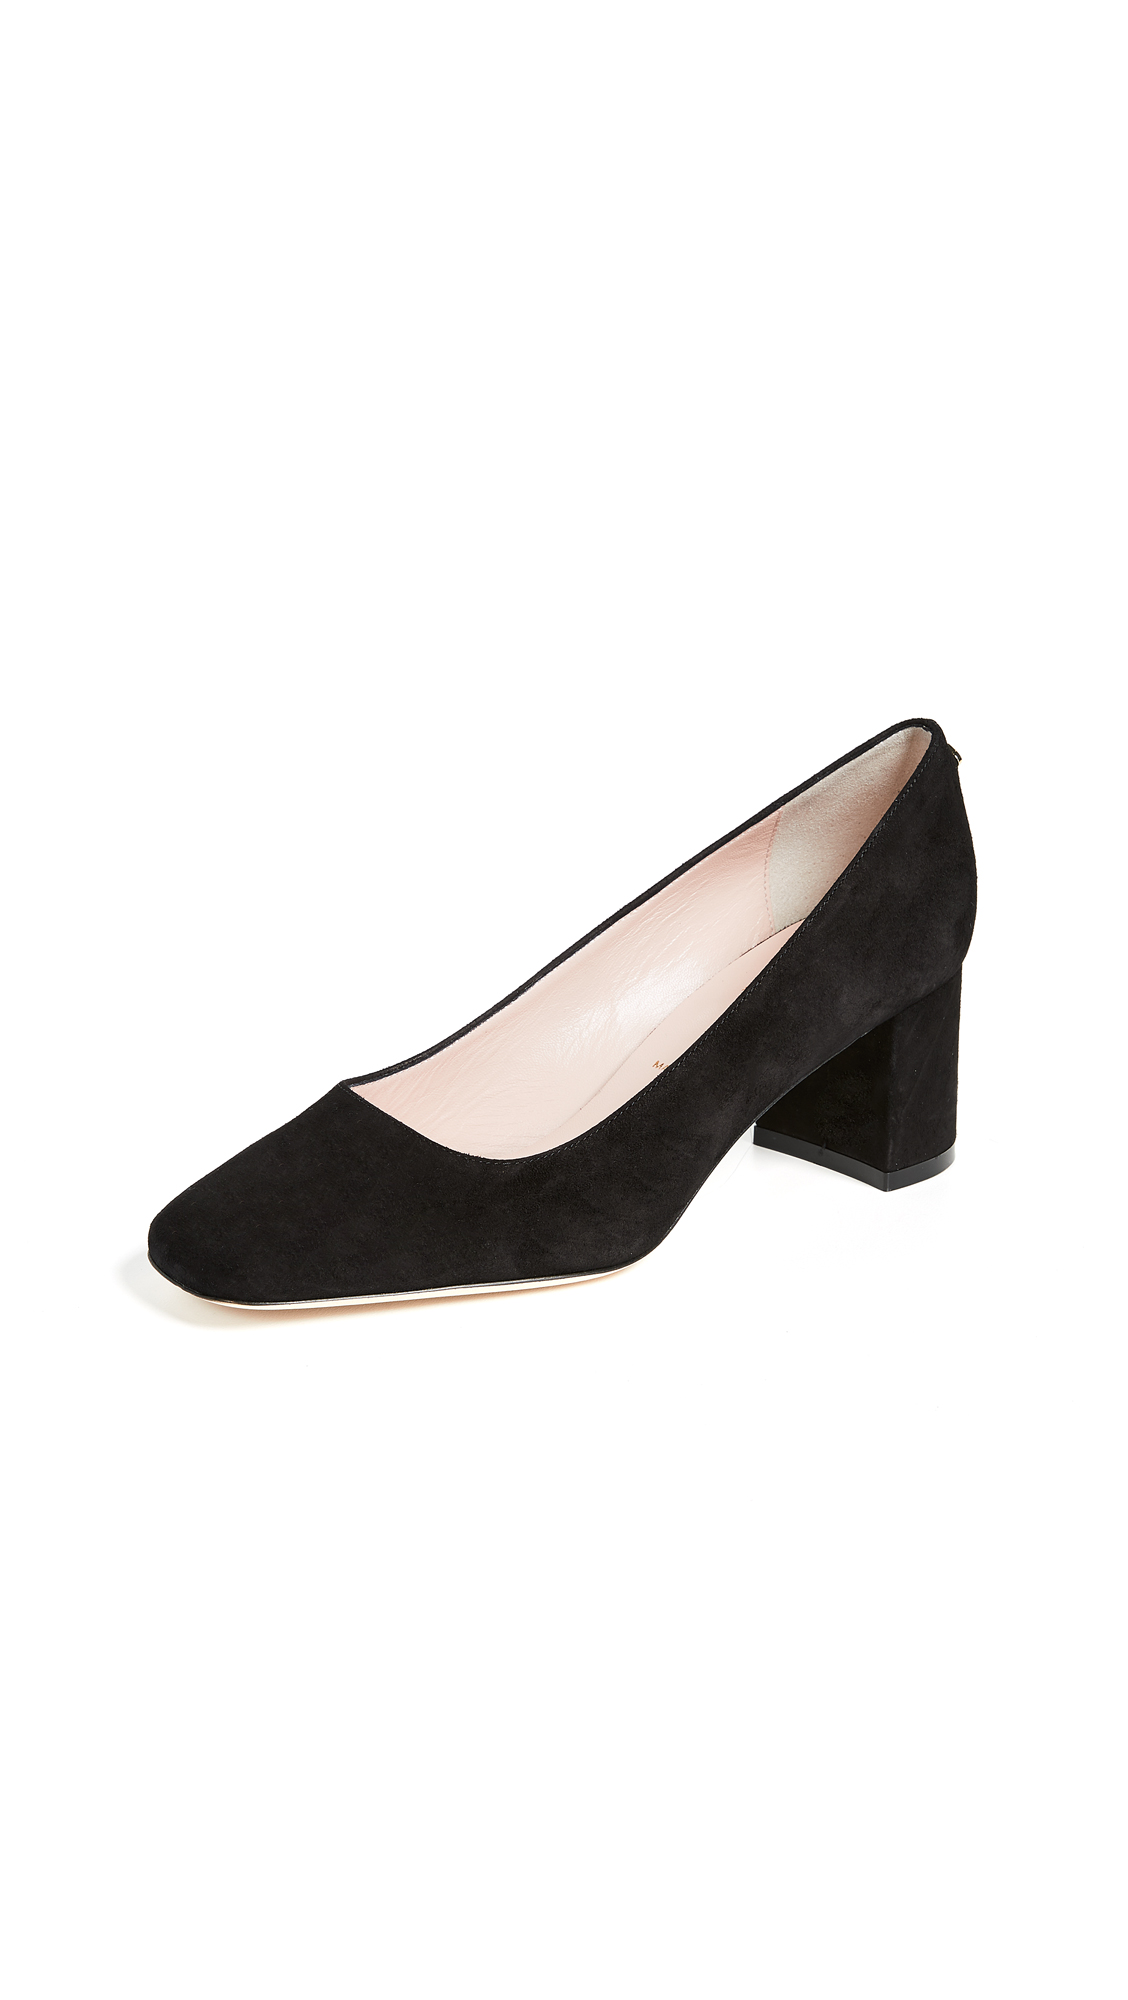 Kate Spade New York Kylah Square Toe Pumps In Black